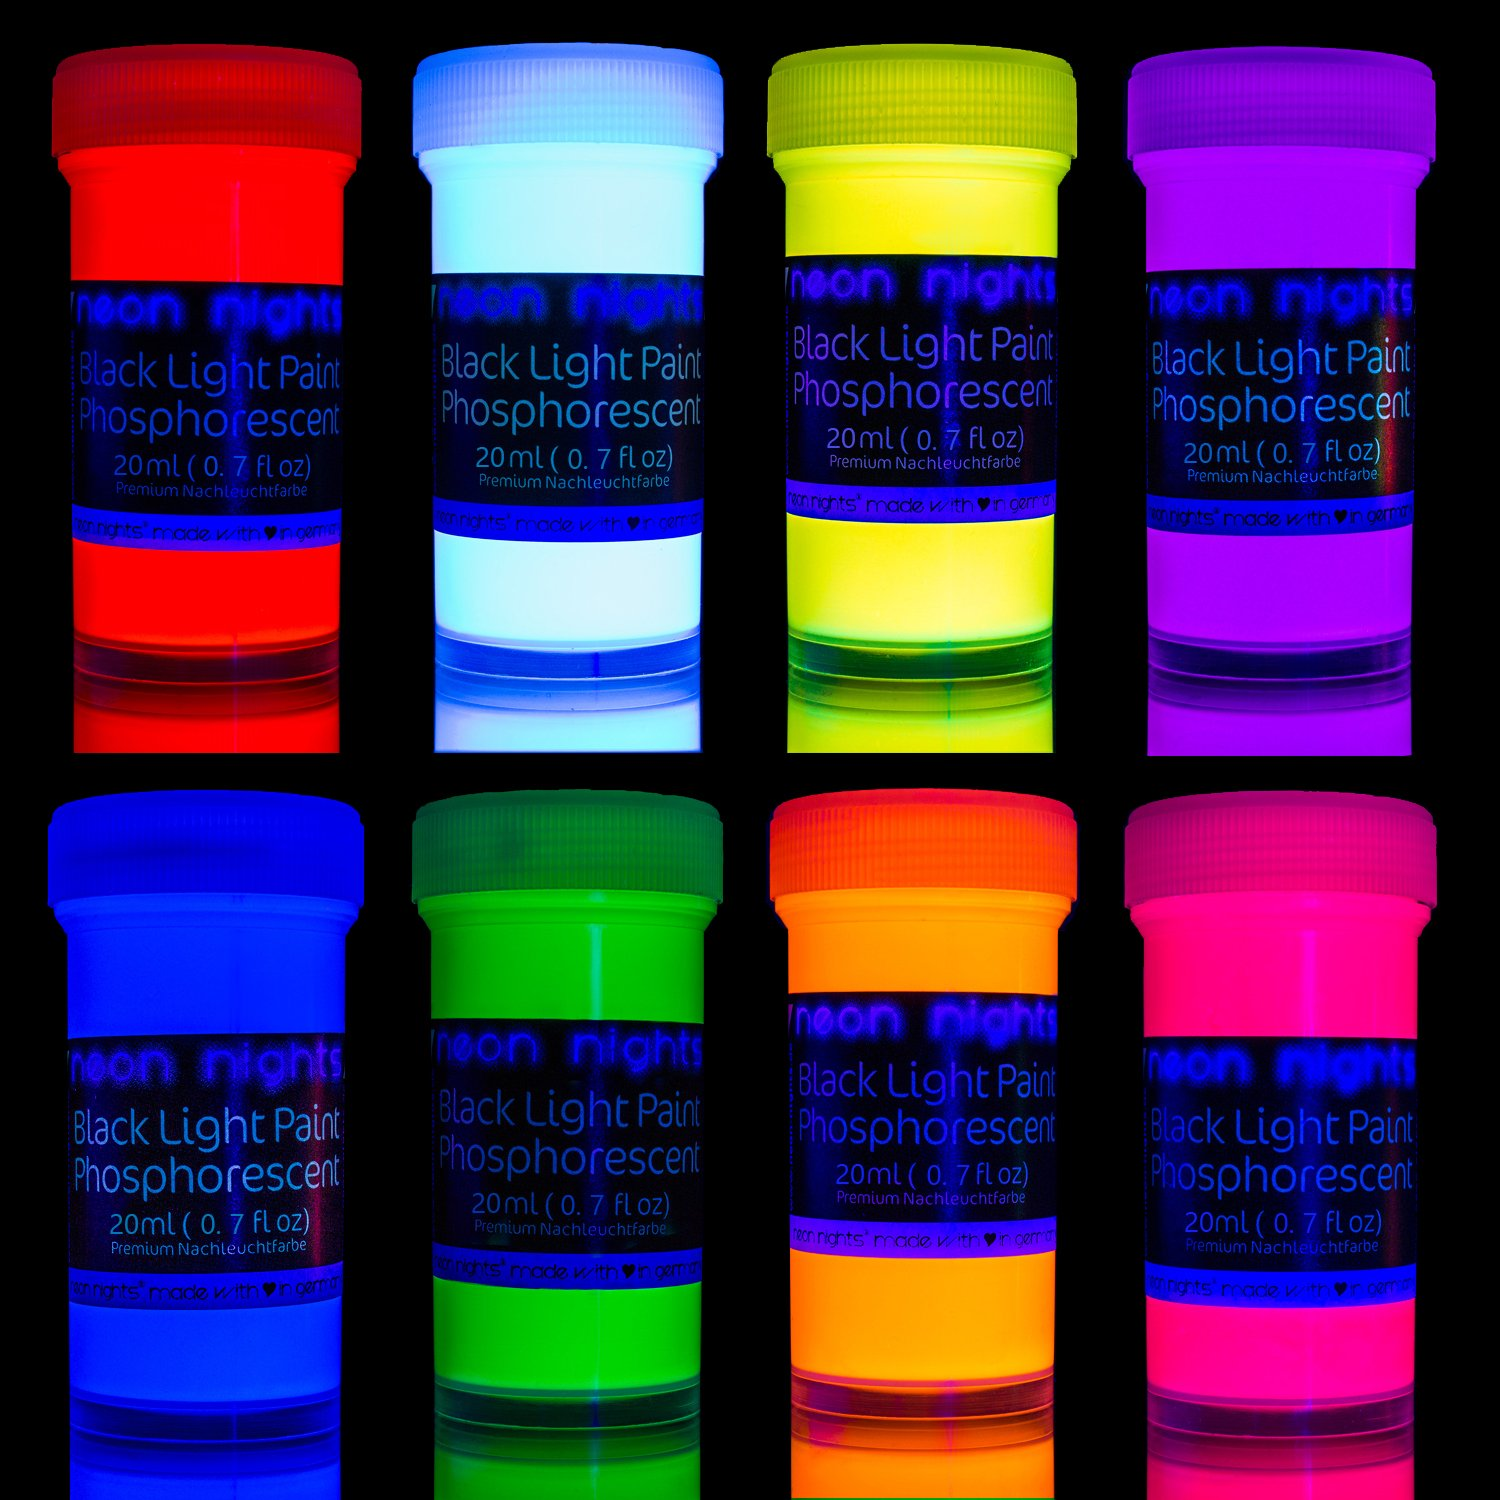 Get Quotations Neon Nights Glow In The Dark Luminescent Phospscent Self Luminous Paint